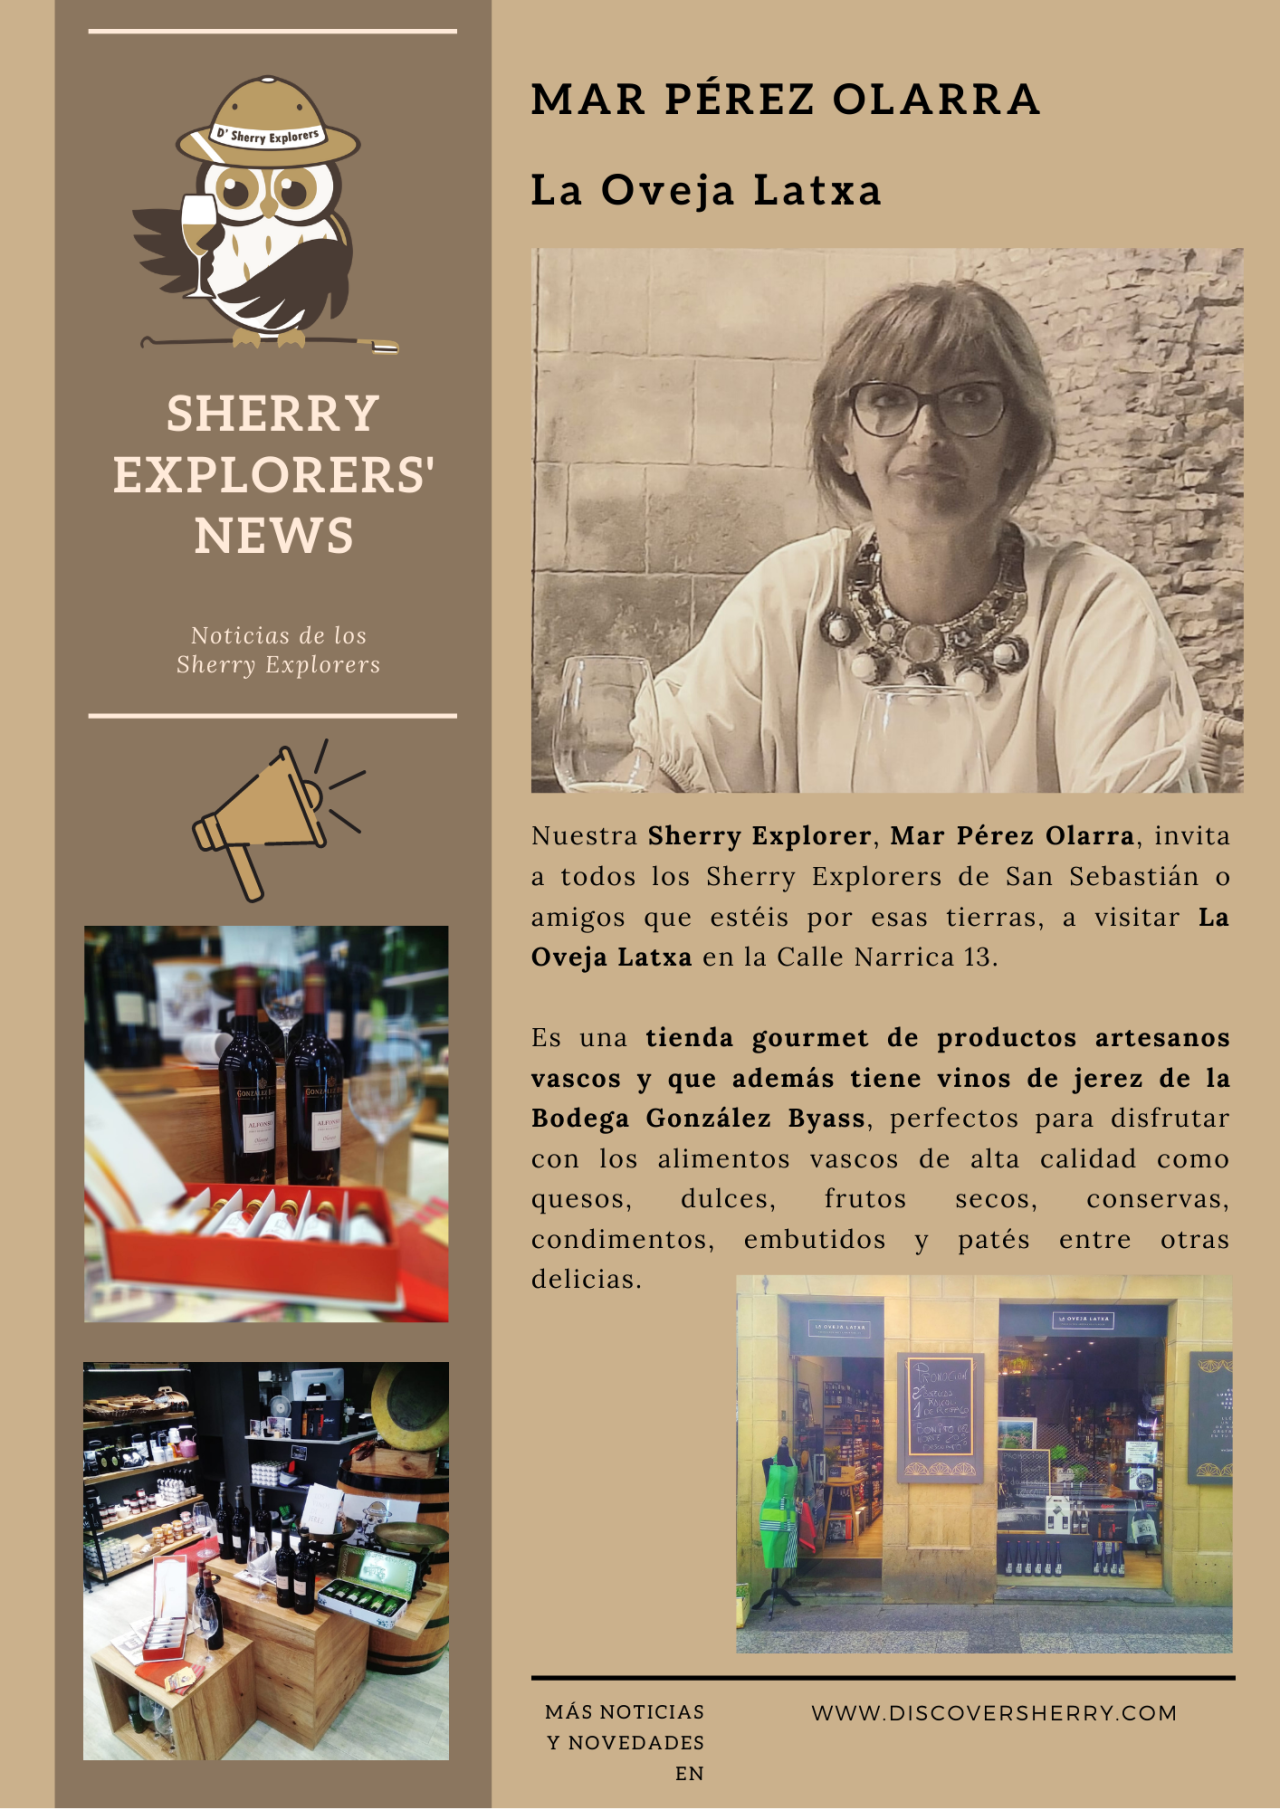 Sherry Explorers´ News: Mar Pérez Olarra